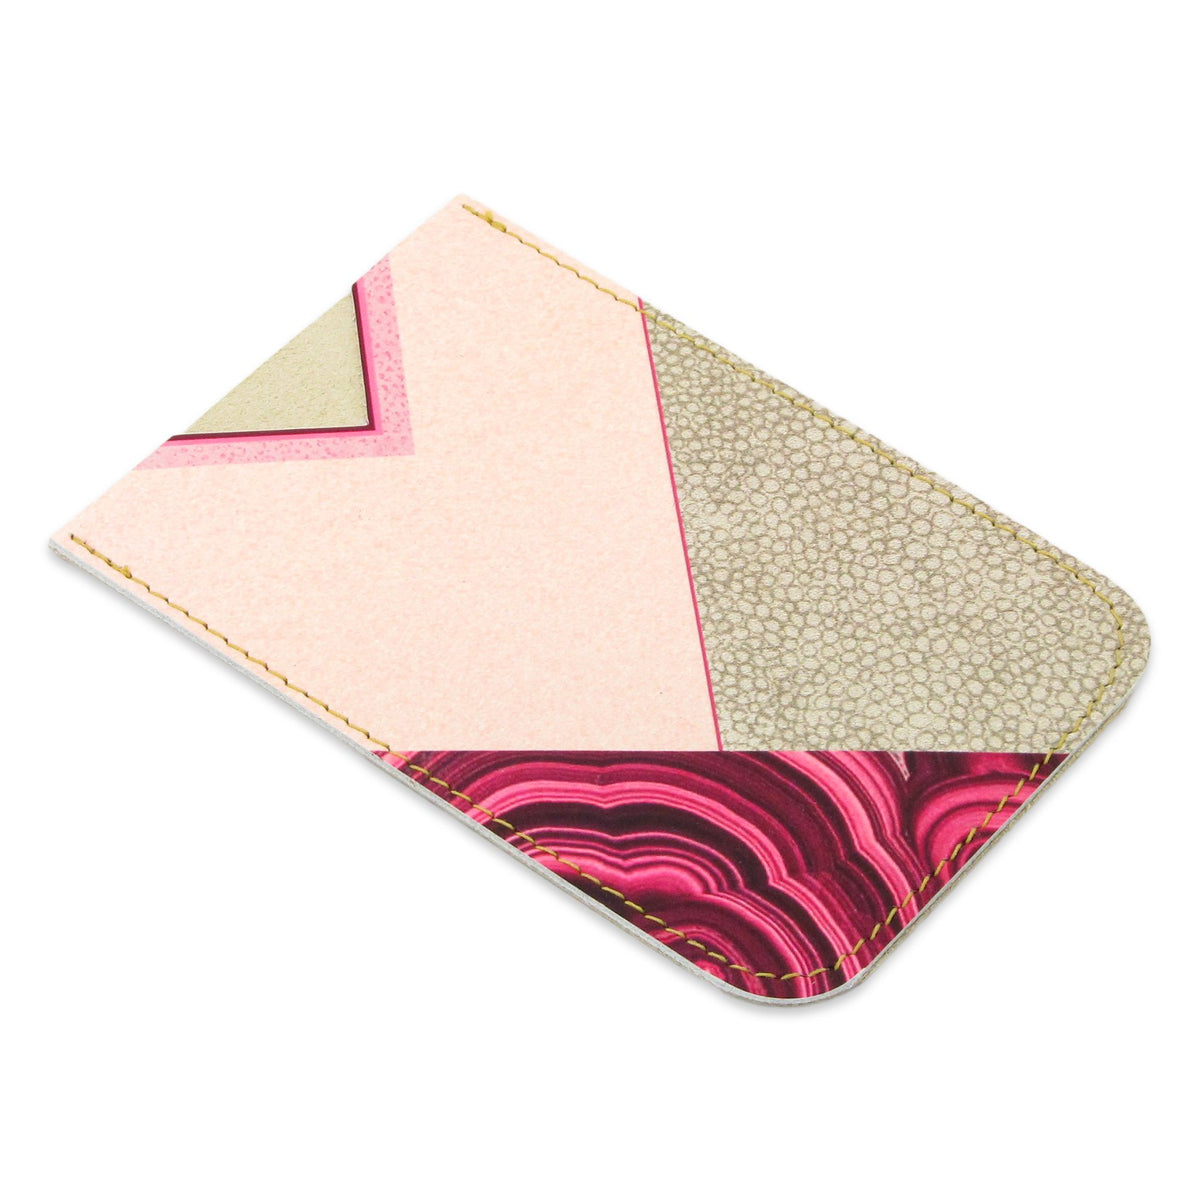 Leather Card Holder / Phone Sticker Wallet Pocket - Geometric Agate